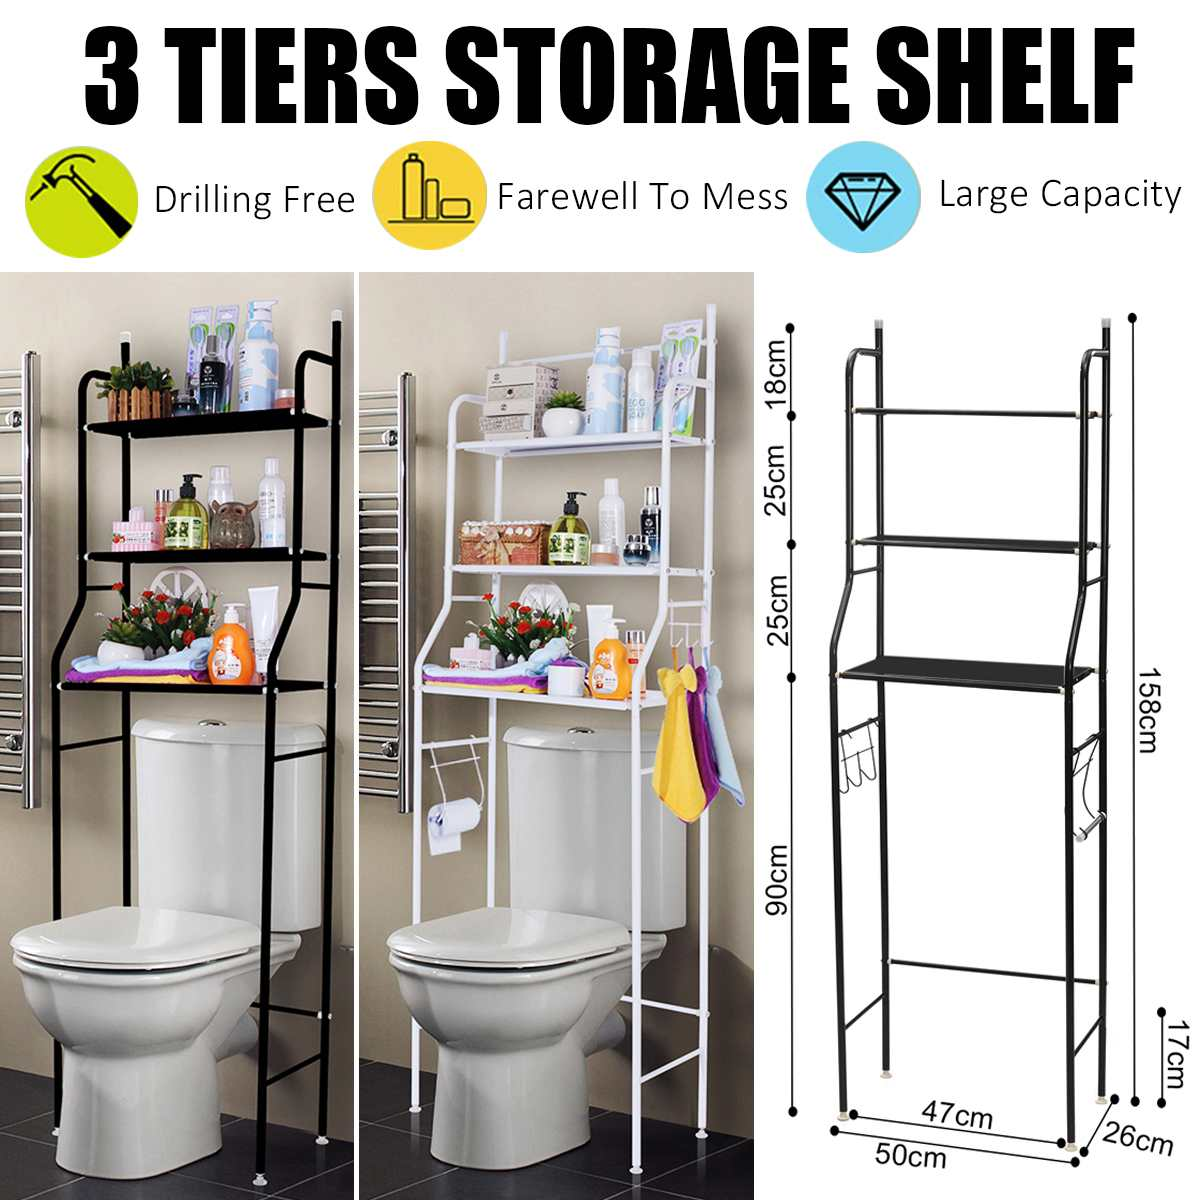 3 Tier Shelf Over Home Kitchen Bathroom Storage Rack Multifunction Toiletries Shelves for Bathroom Organizer Accessories necklace